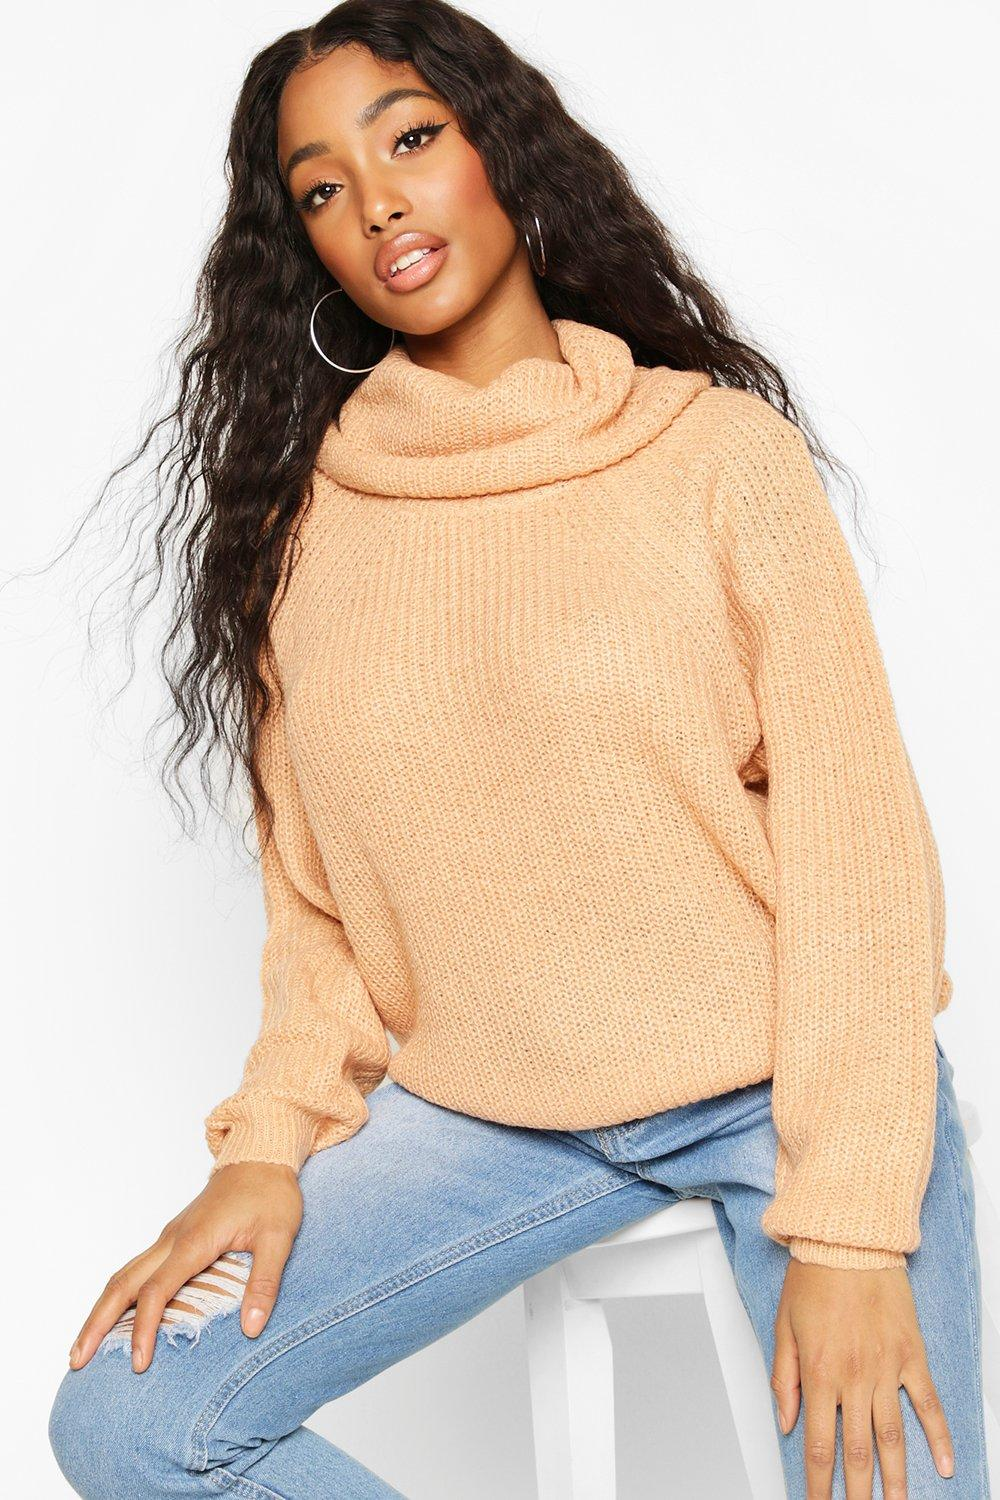 Womens Cowl Roll Neck Oversized Jumper - camel - S, Camel - Boohoo.com